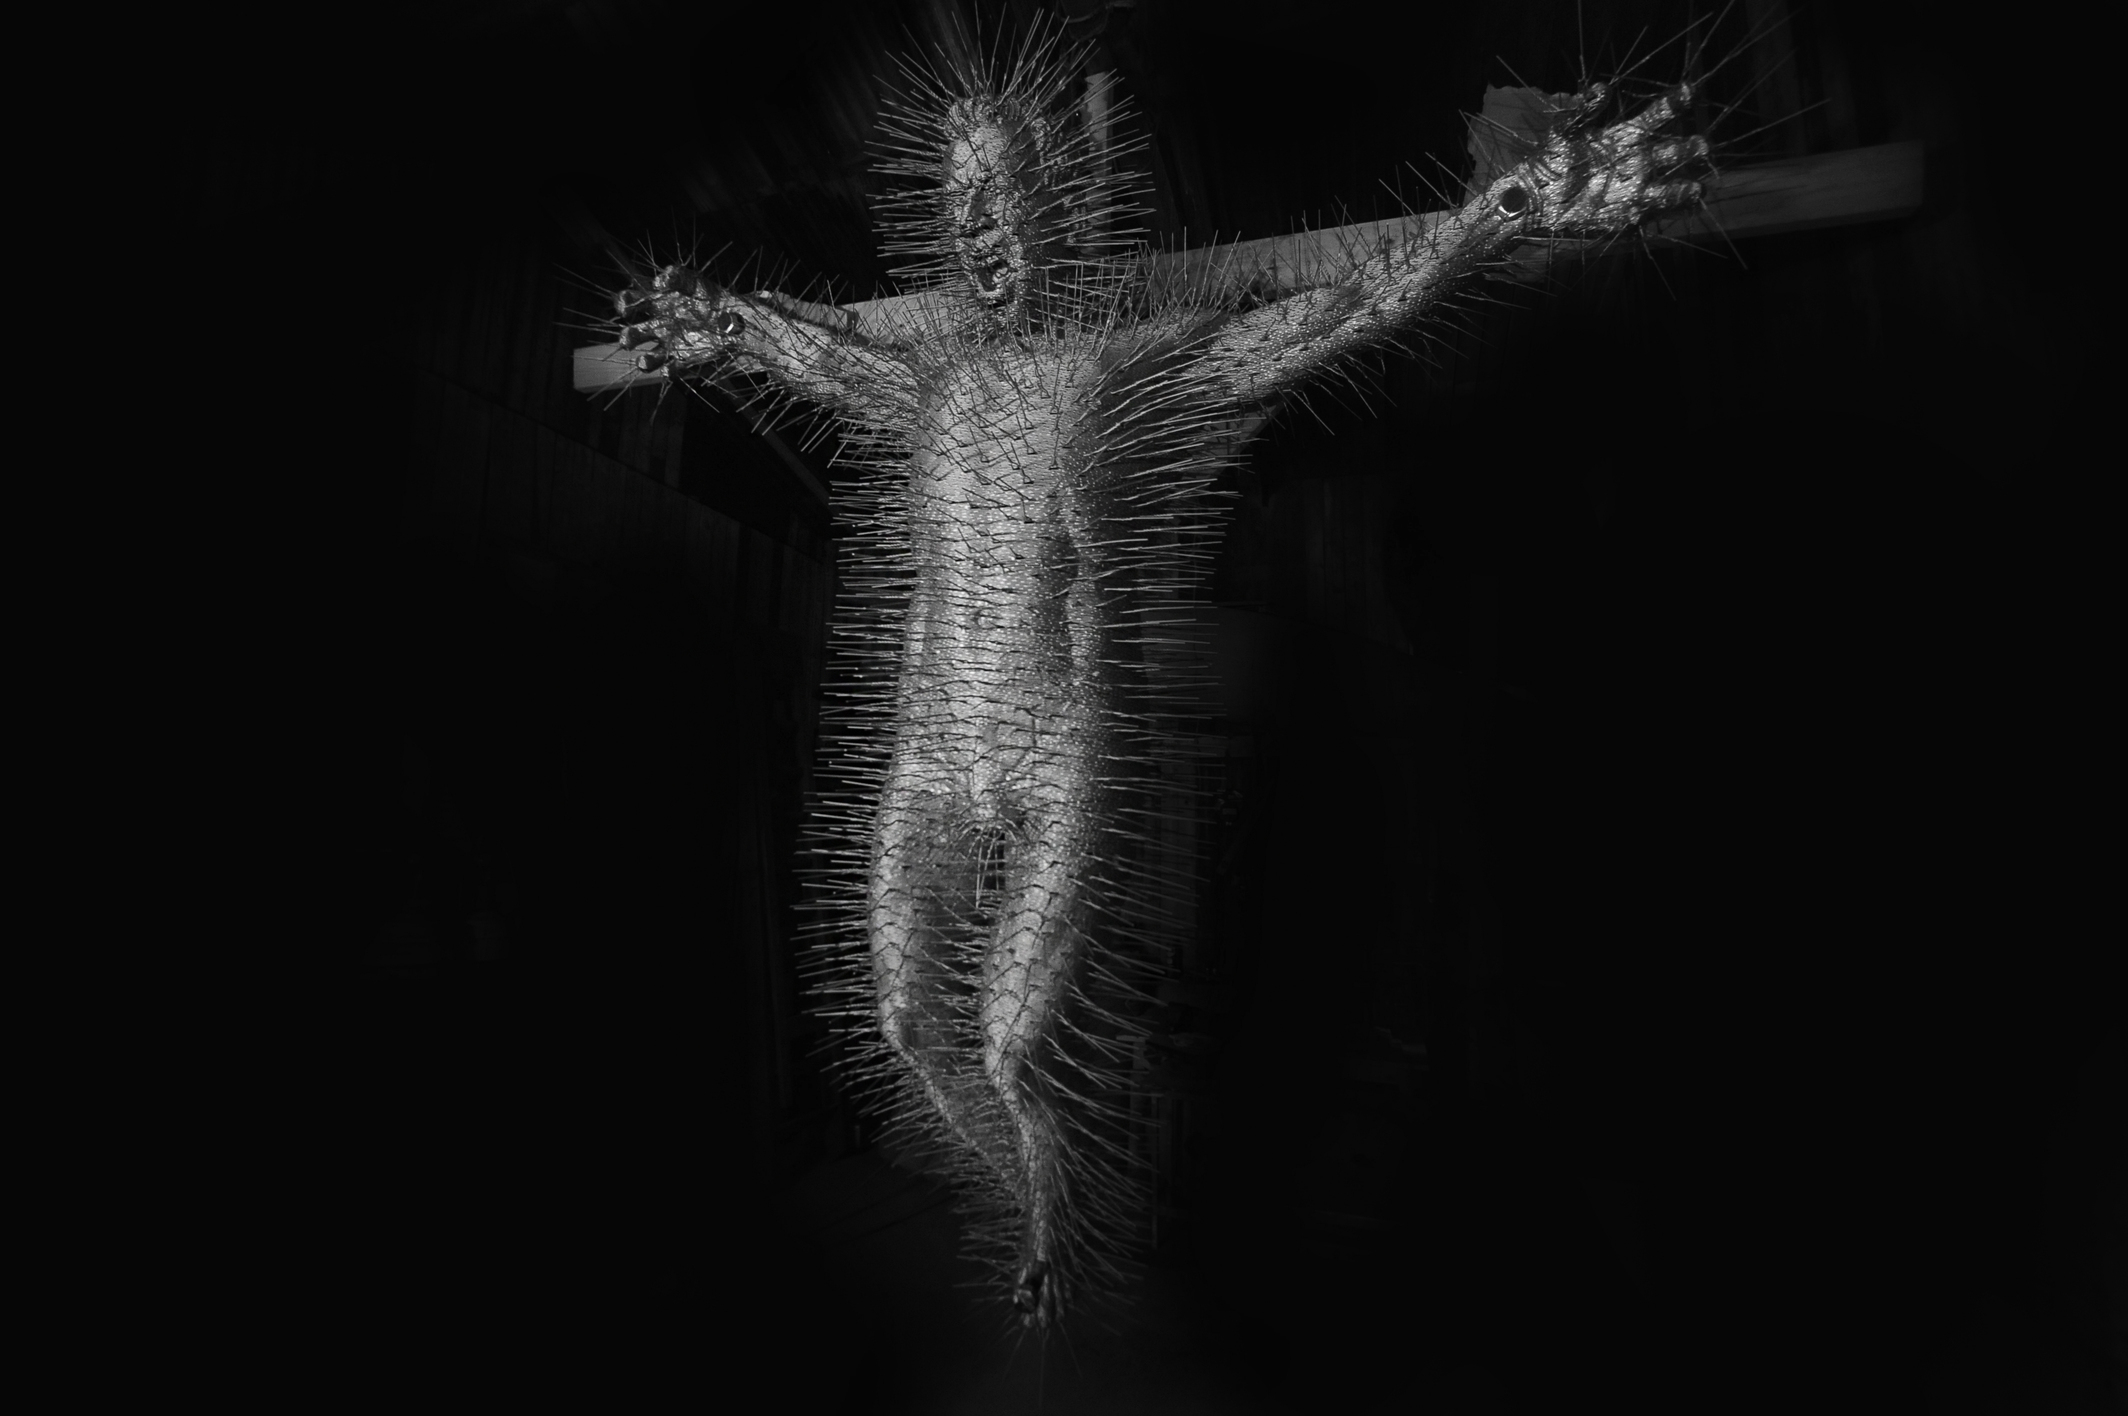 crucifixion-by-David-Mach-wallpaper-wp5404297